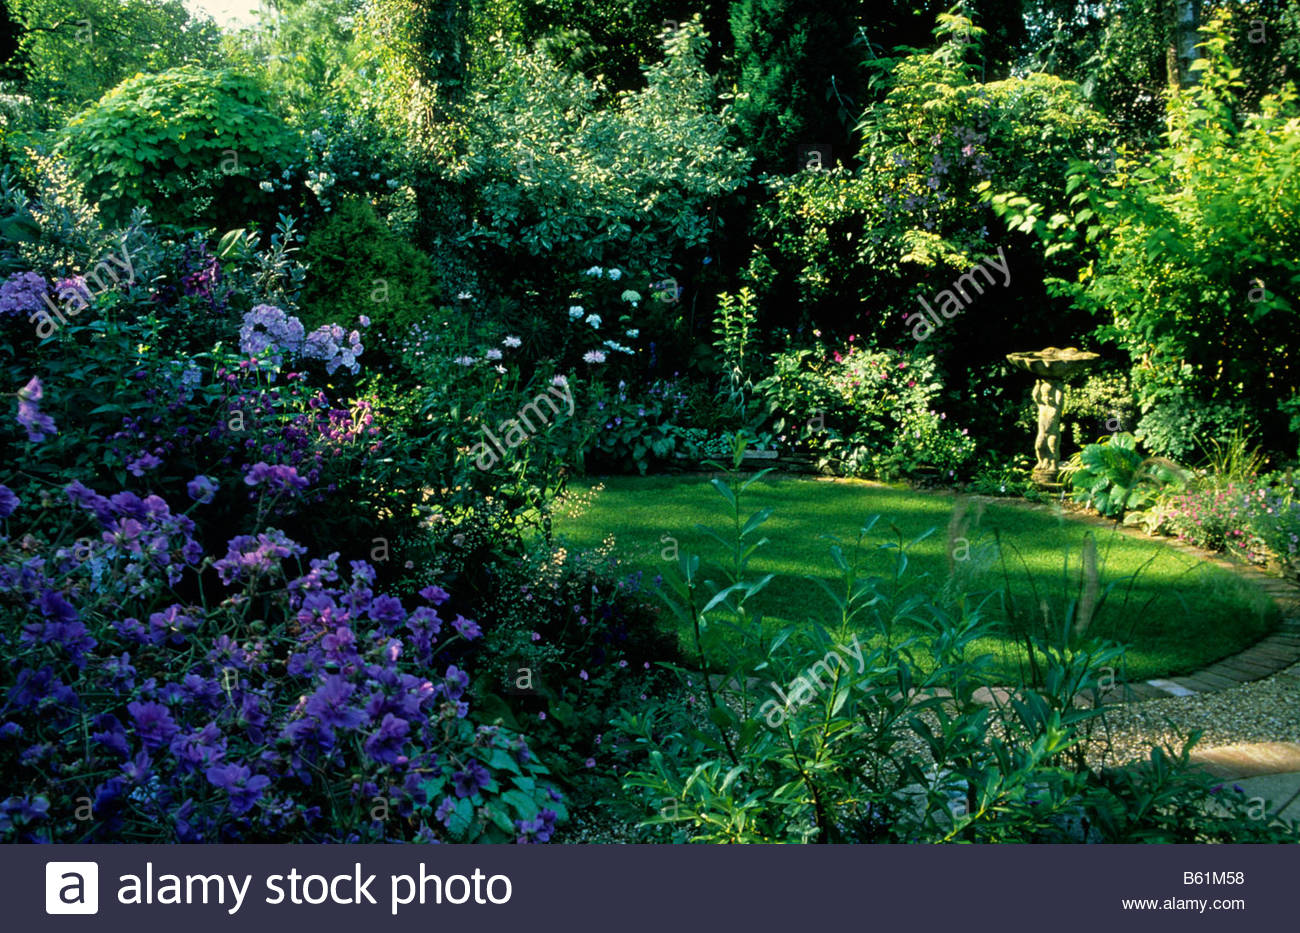 Ladywood Hampshire Small Shady Garden With Formal Circular Lawn Border  Borrowed Landscape Of Woods Beyond Fence